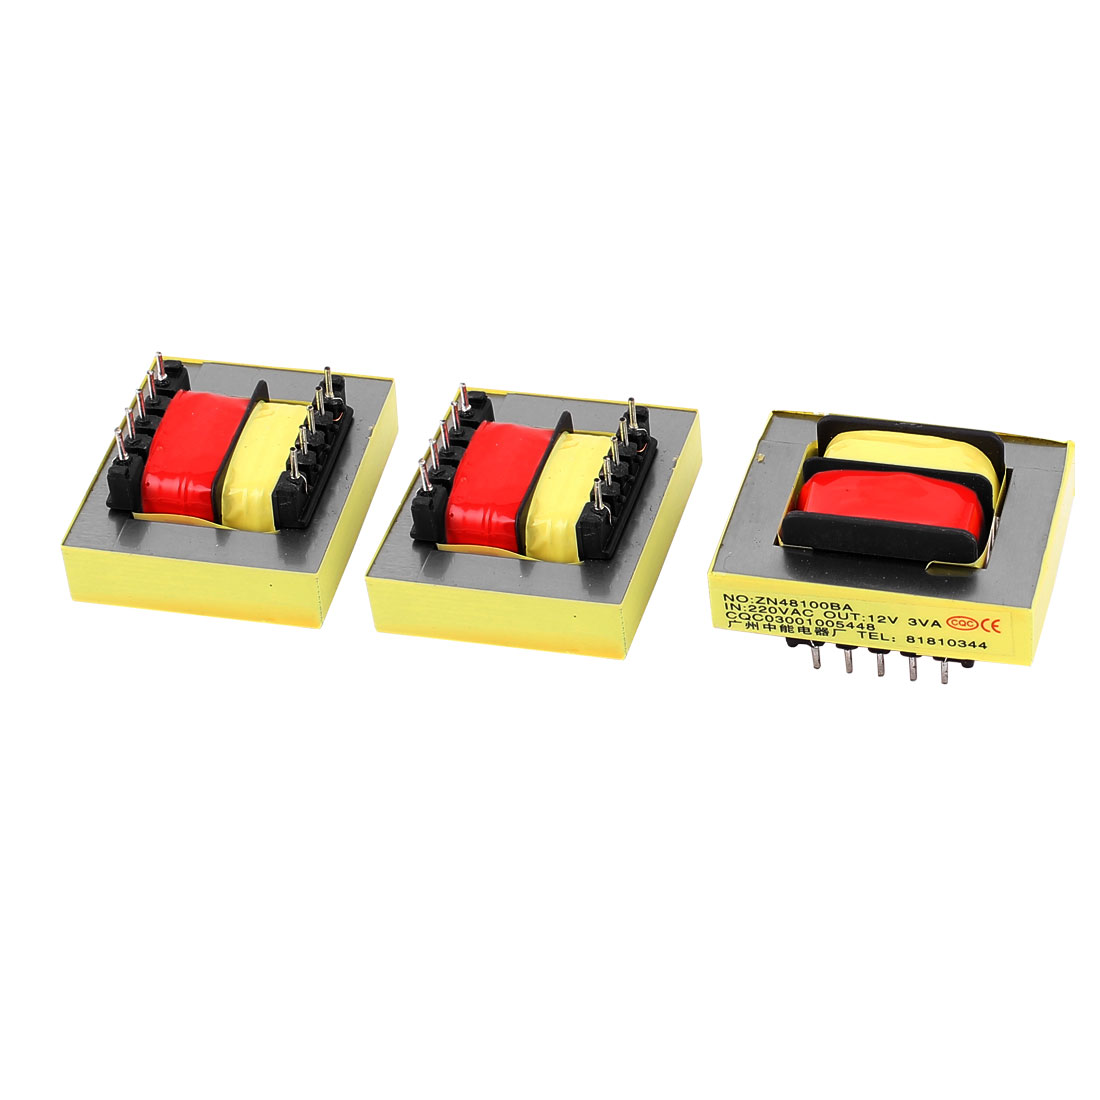 3Pcs 220V Input 12V 3VA Output Yellow Red Ferrite Core Power Transformer w 10 Terminals